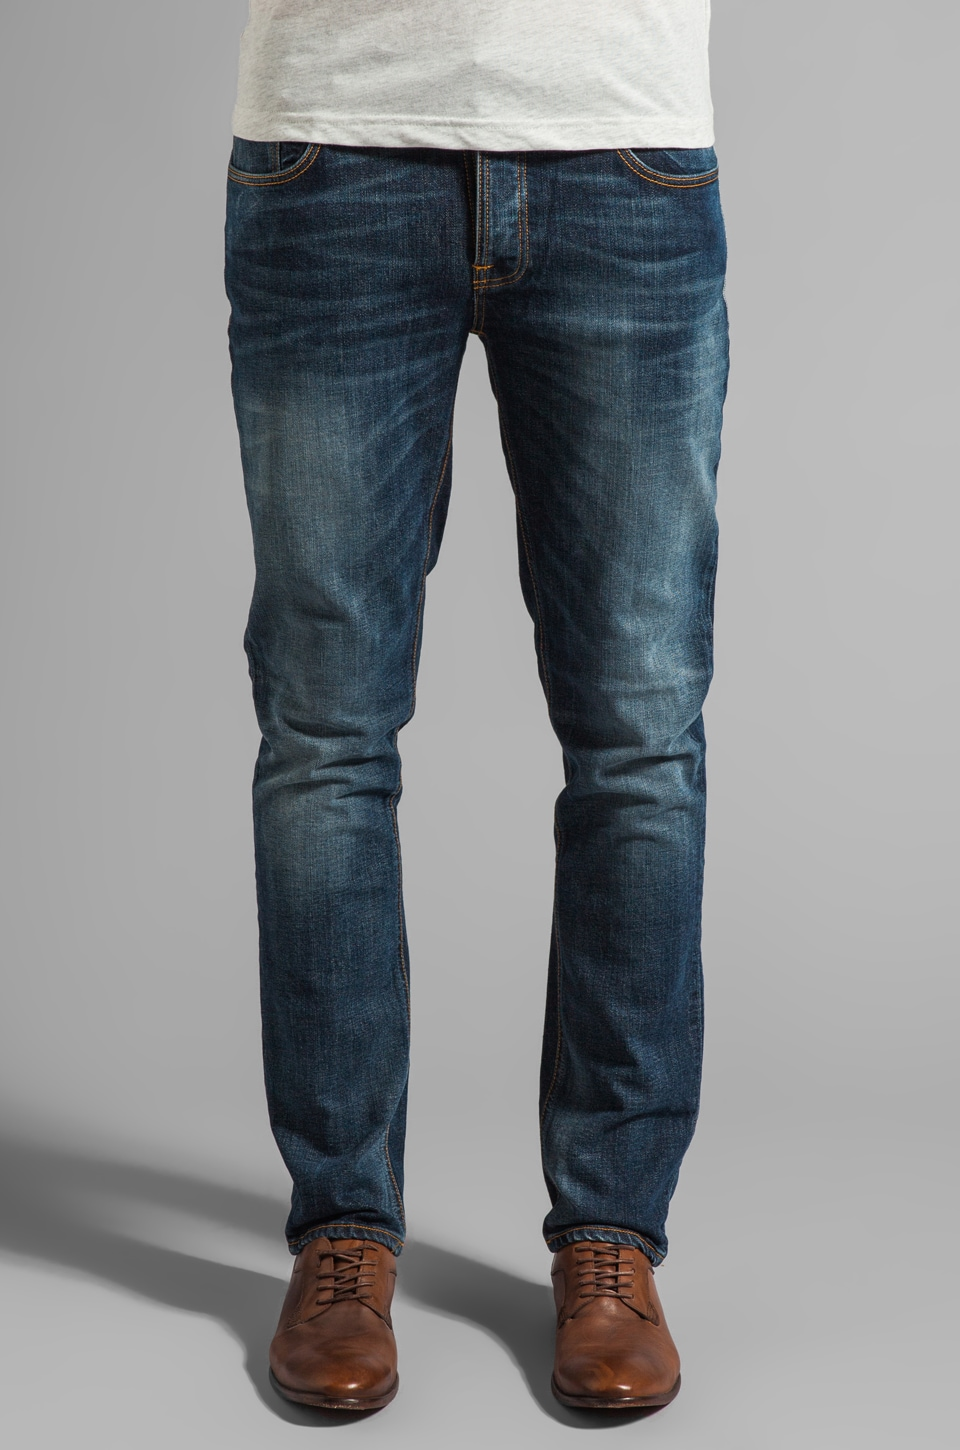 Nudie Jeans Grim Tim in Org. Teal Blue